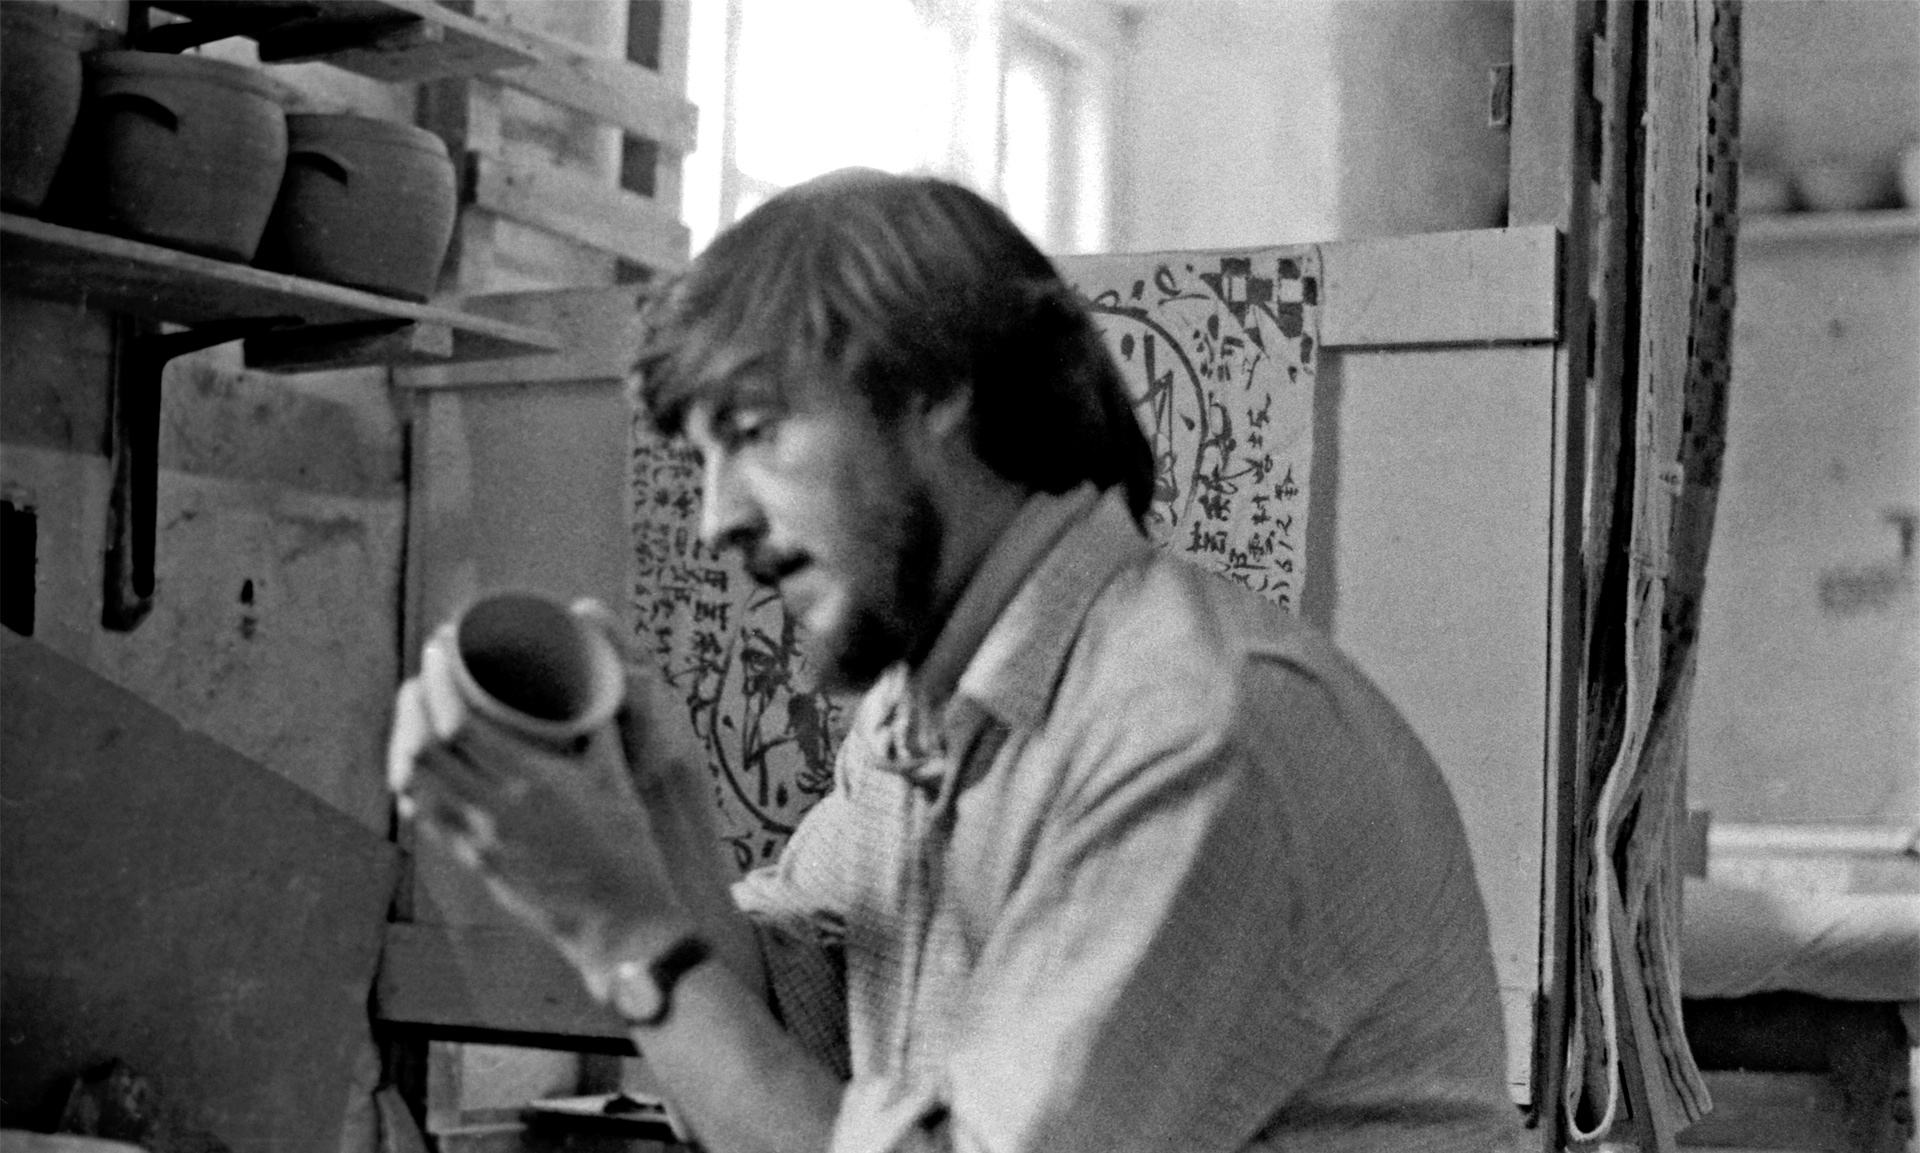 Trevor Corser at work in the Leach Pottery. Photograph: Marie Yates